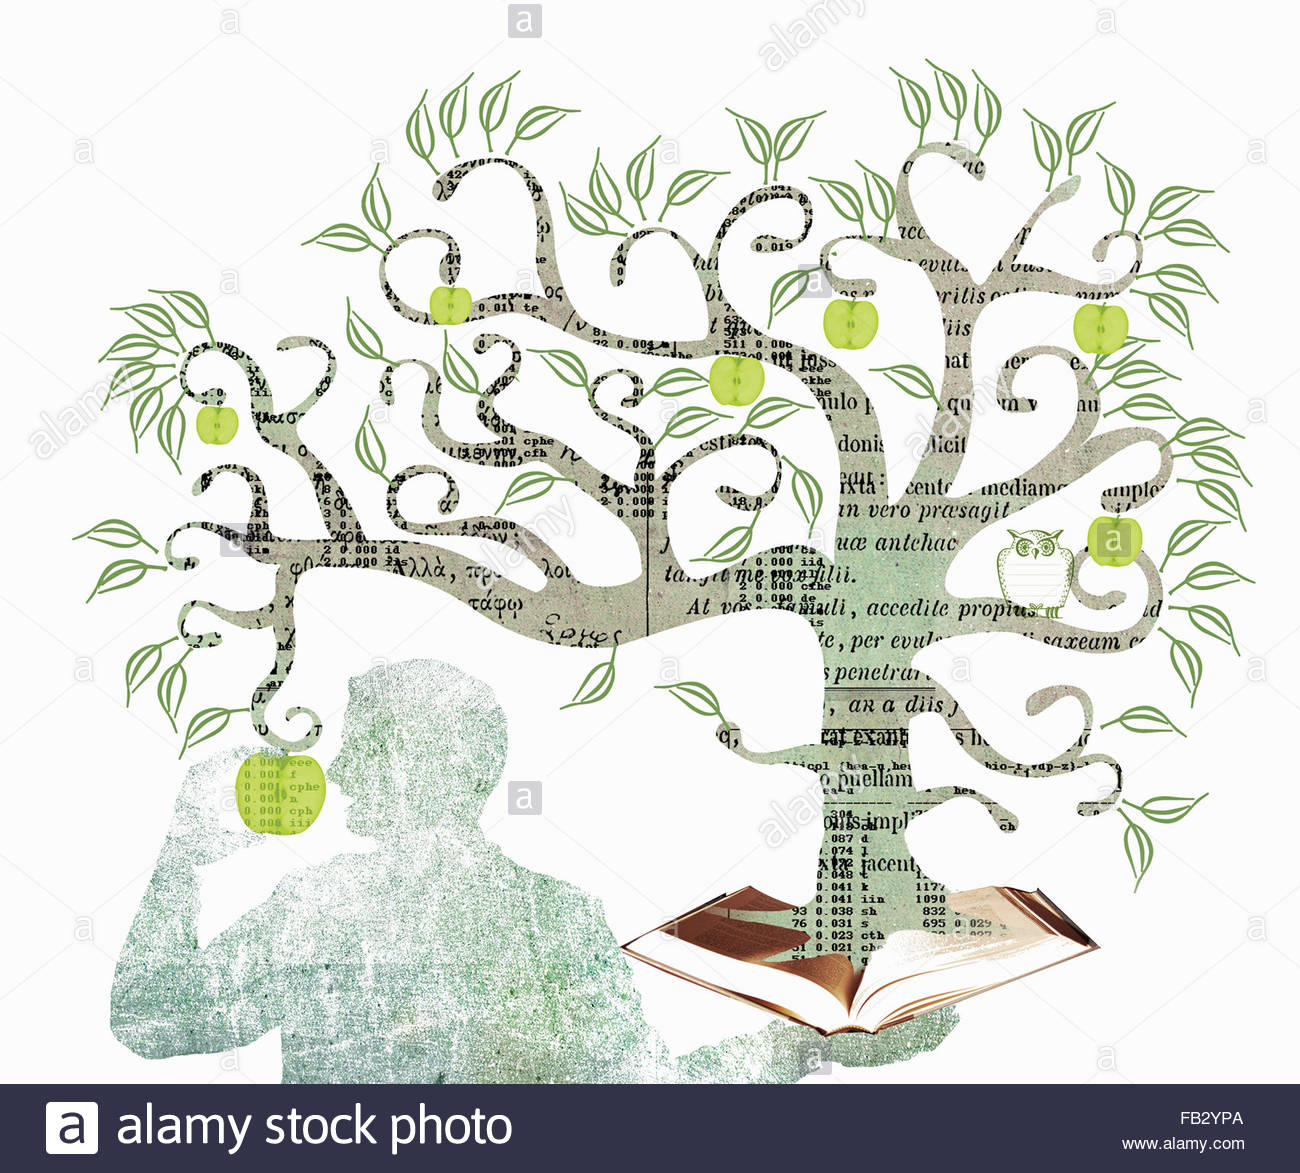 Man eating apple from the tree of knowledge growing out of book - Stock Image